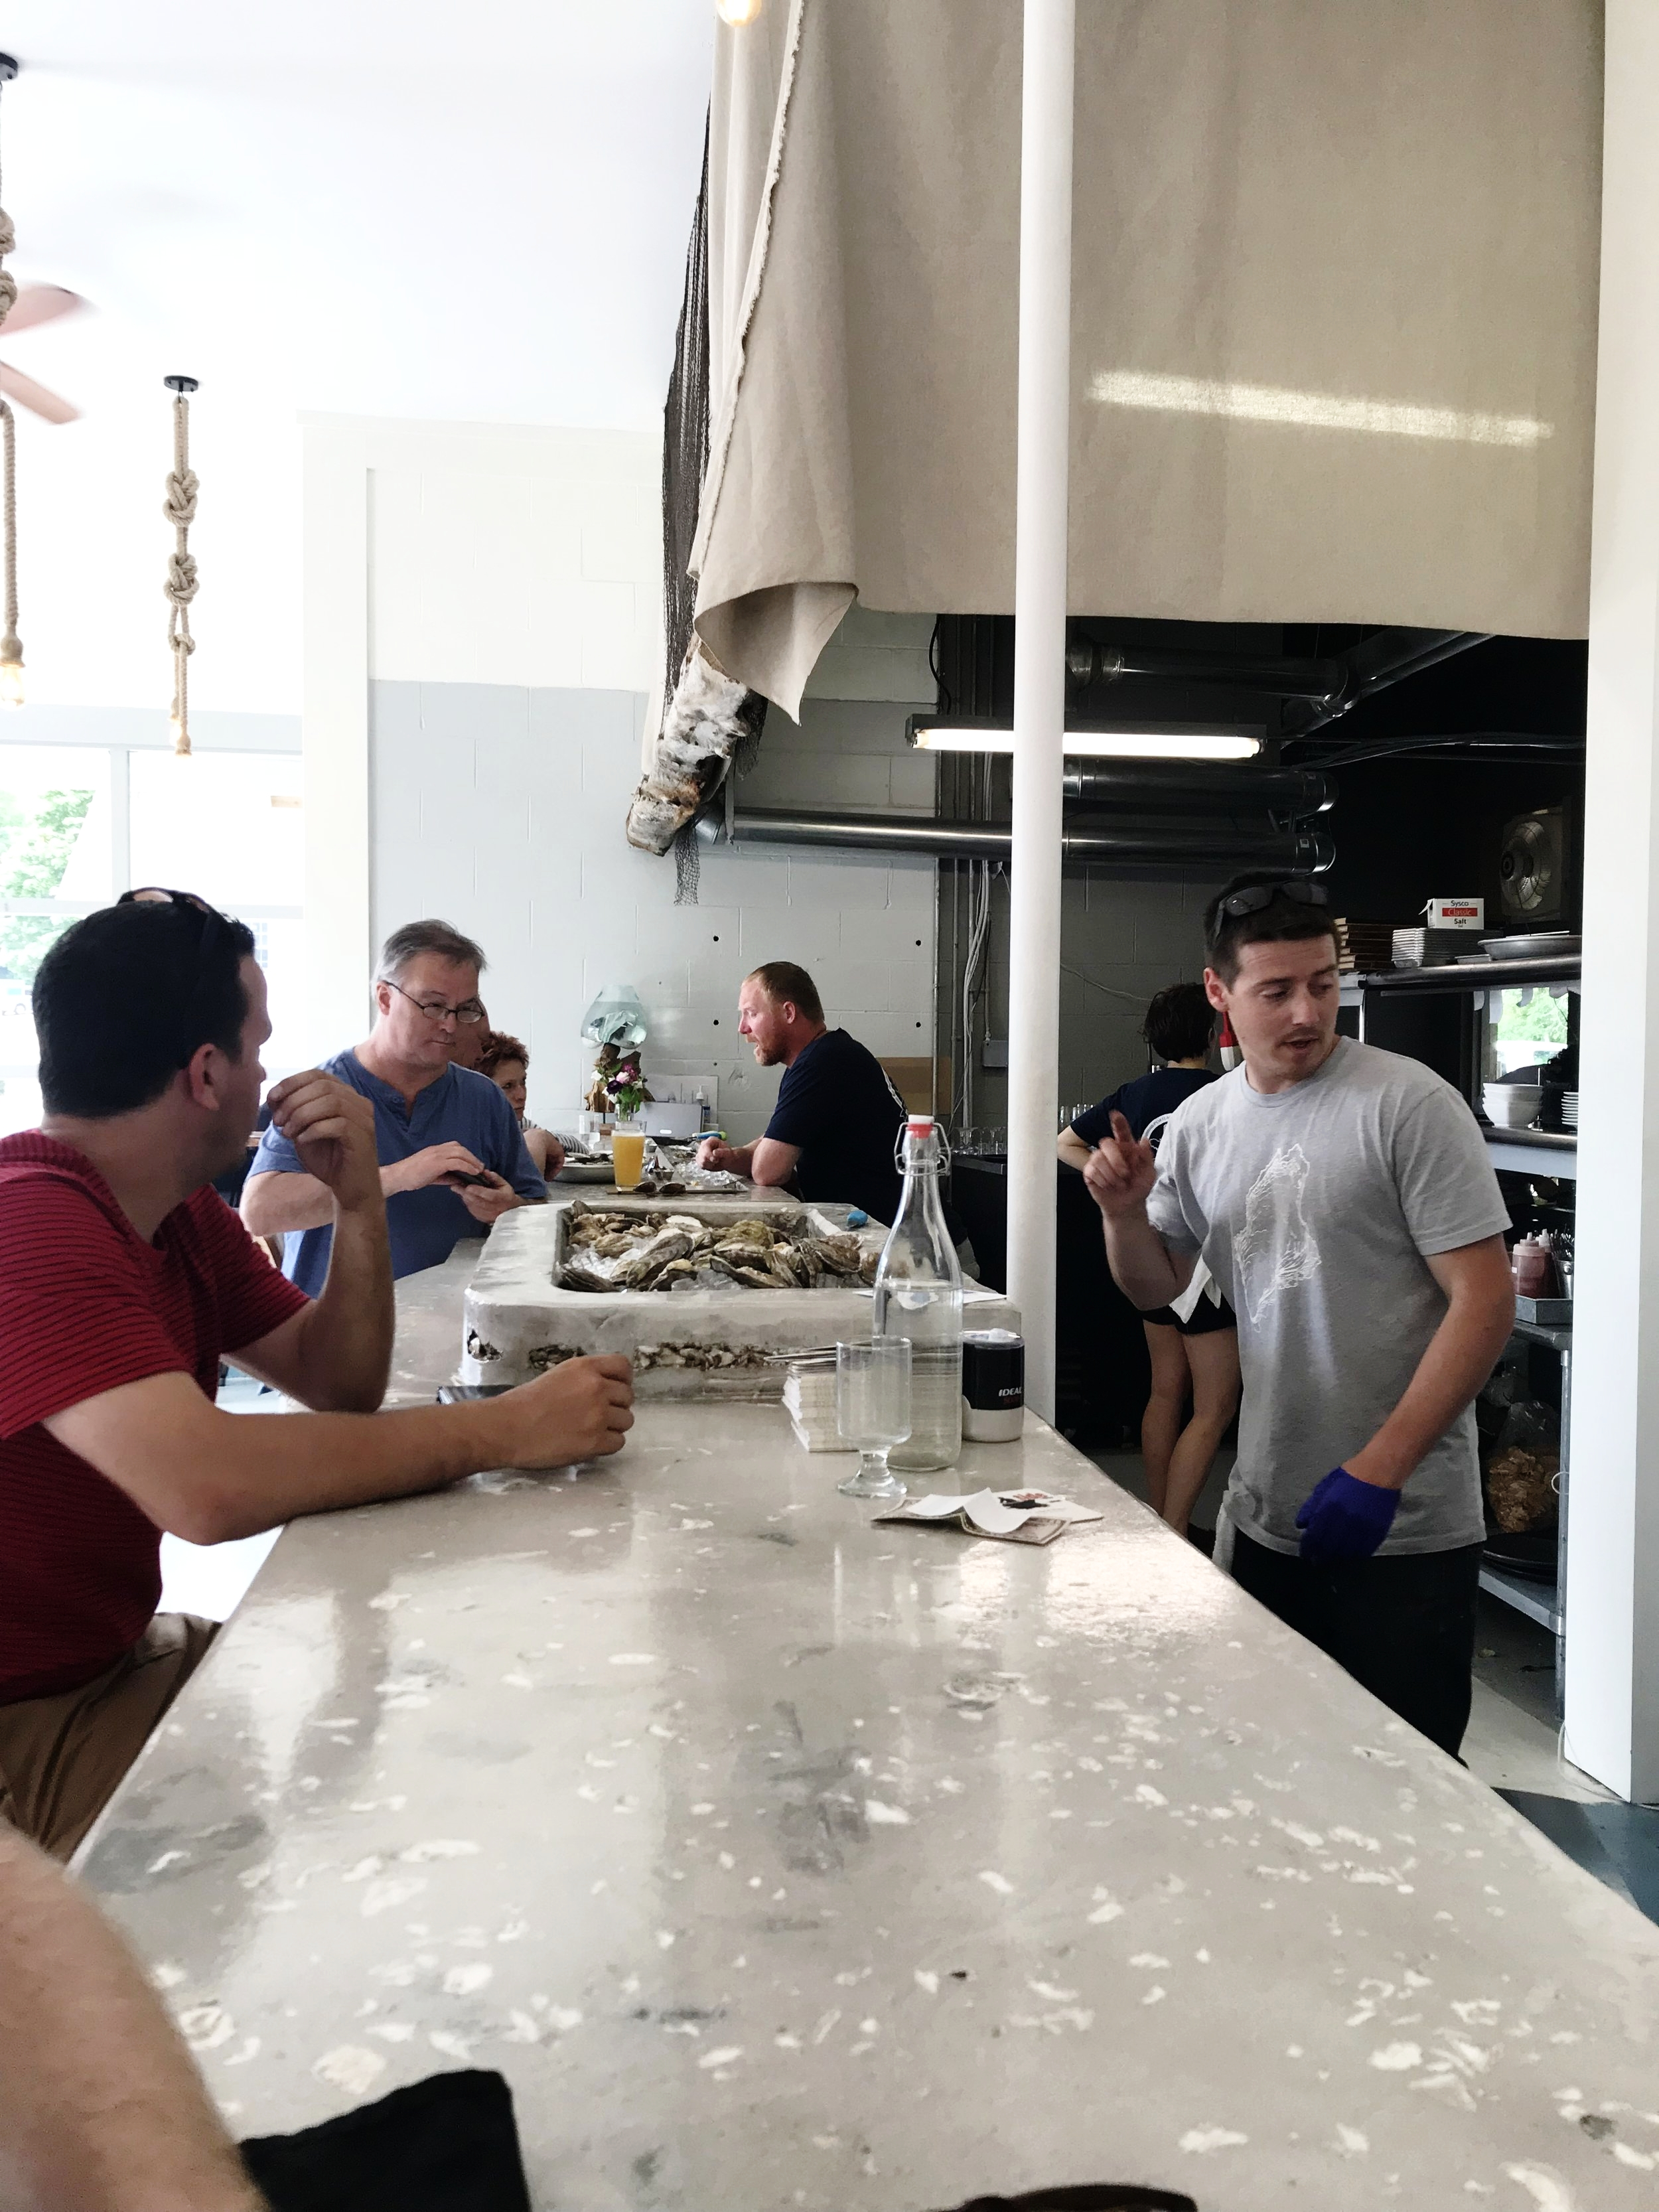 The bar fused with oyster shell, and Brendan pausing for a moment from shucking.